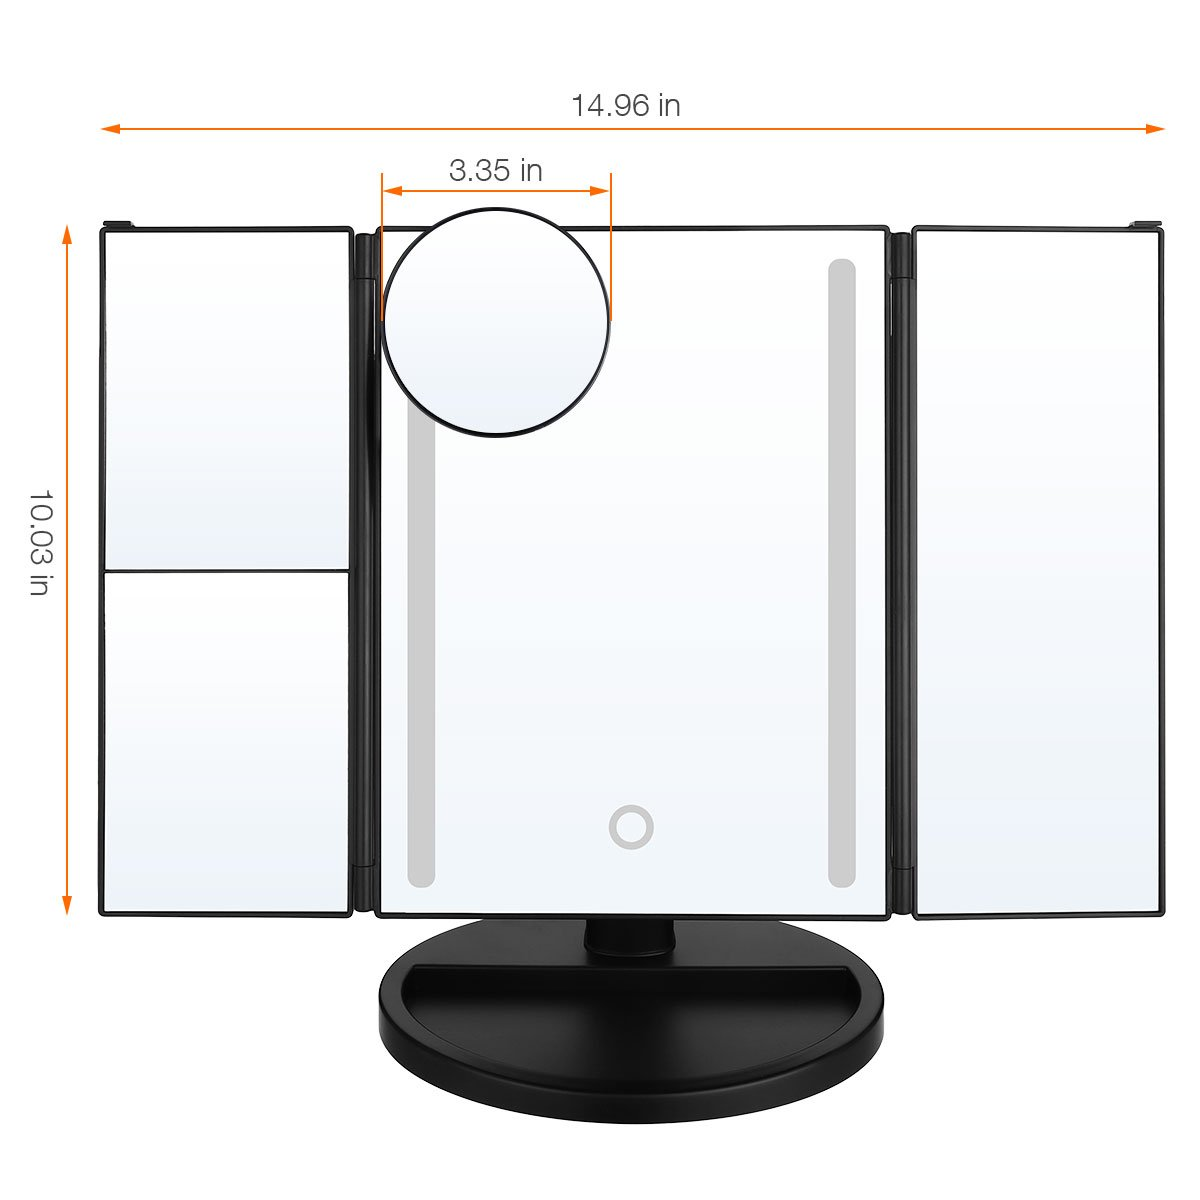 LEPO LED Makeup Mirror, Makeup Vanity Mirror with 1X/2X/3X/10X Magnification, Cosmetic Mirror with 24 LED Lights, 180 Degree Adjustable Rotation (Black) by LEPO (Image #6)